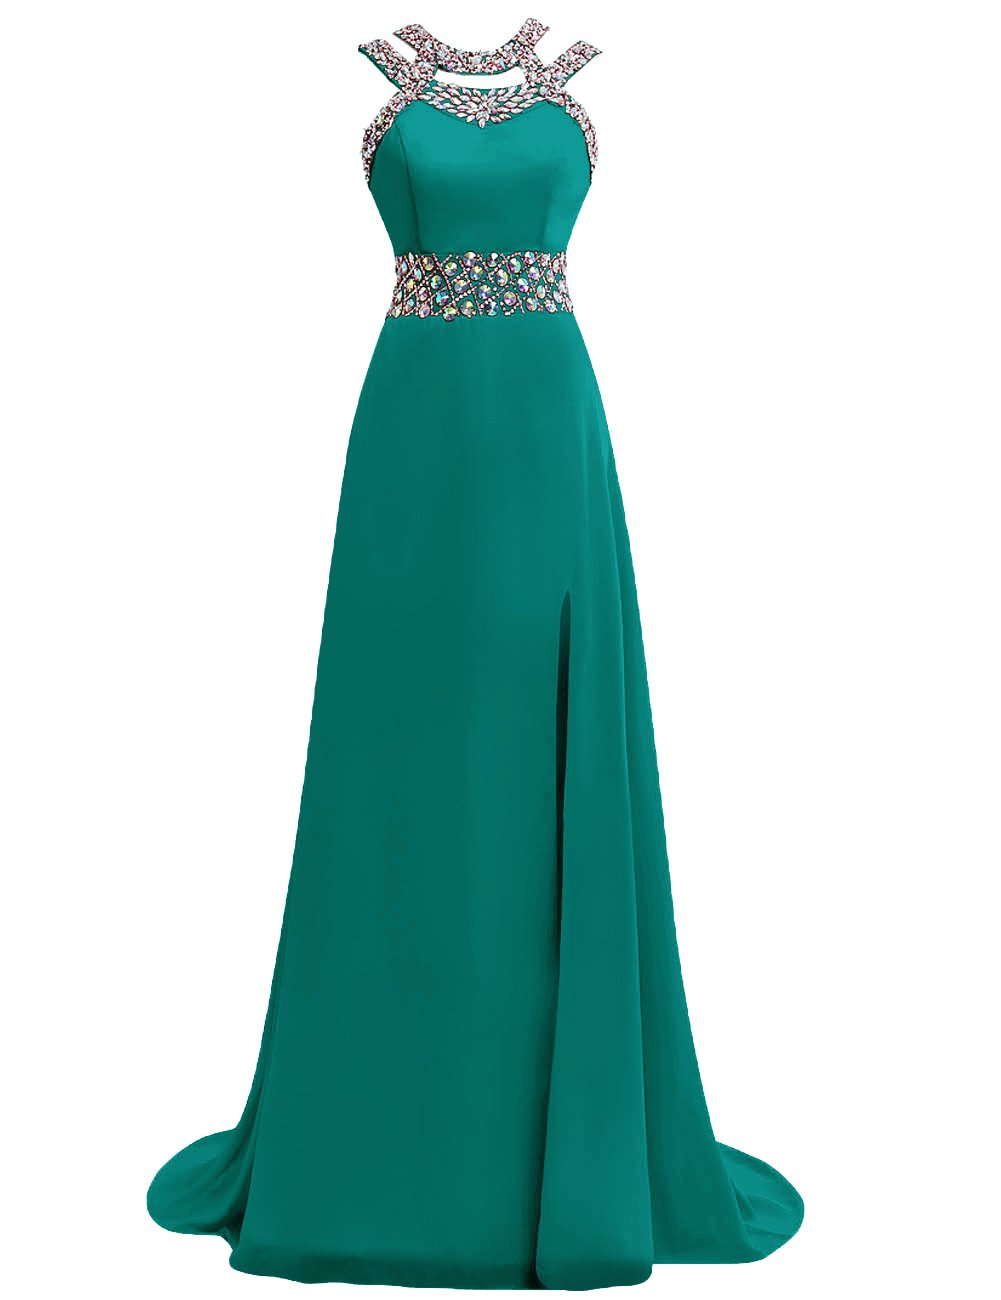 Available at Amazon: Prom Dress Halter Evening Gowns Formal Long Slit Chiffon Bridesmaid Dresses A line Open Back